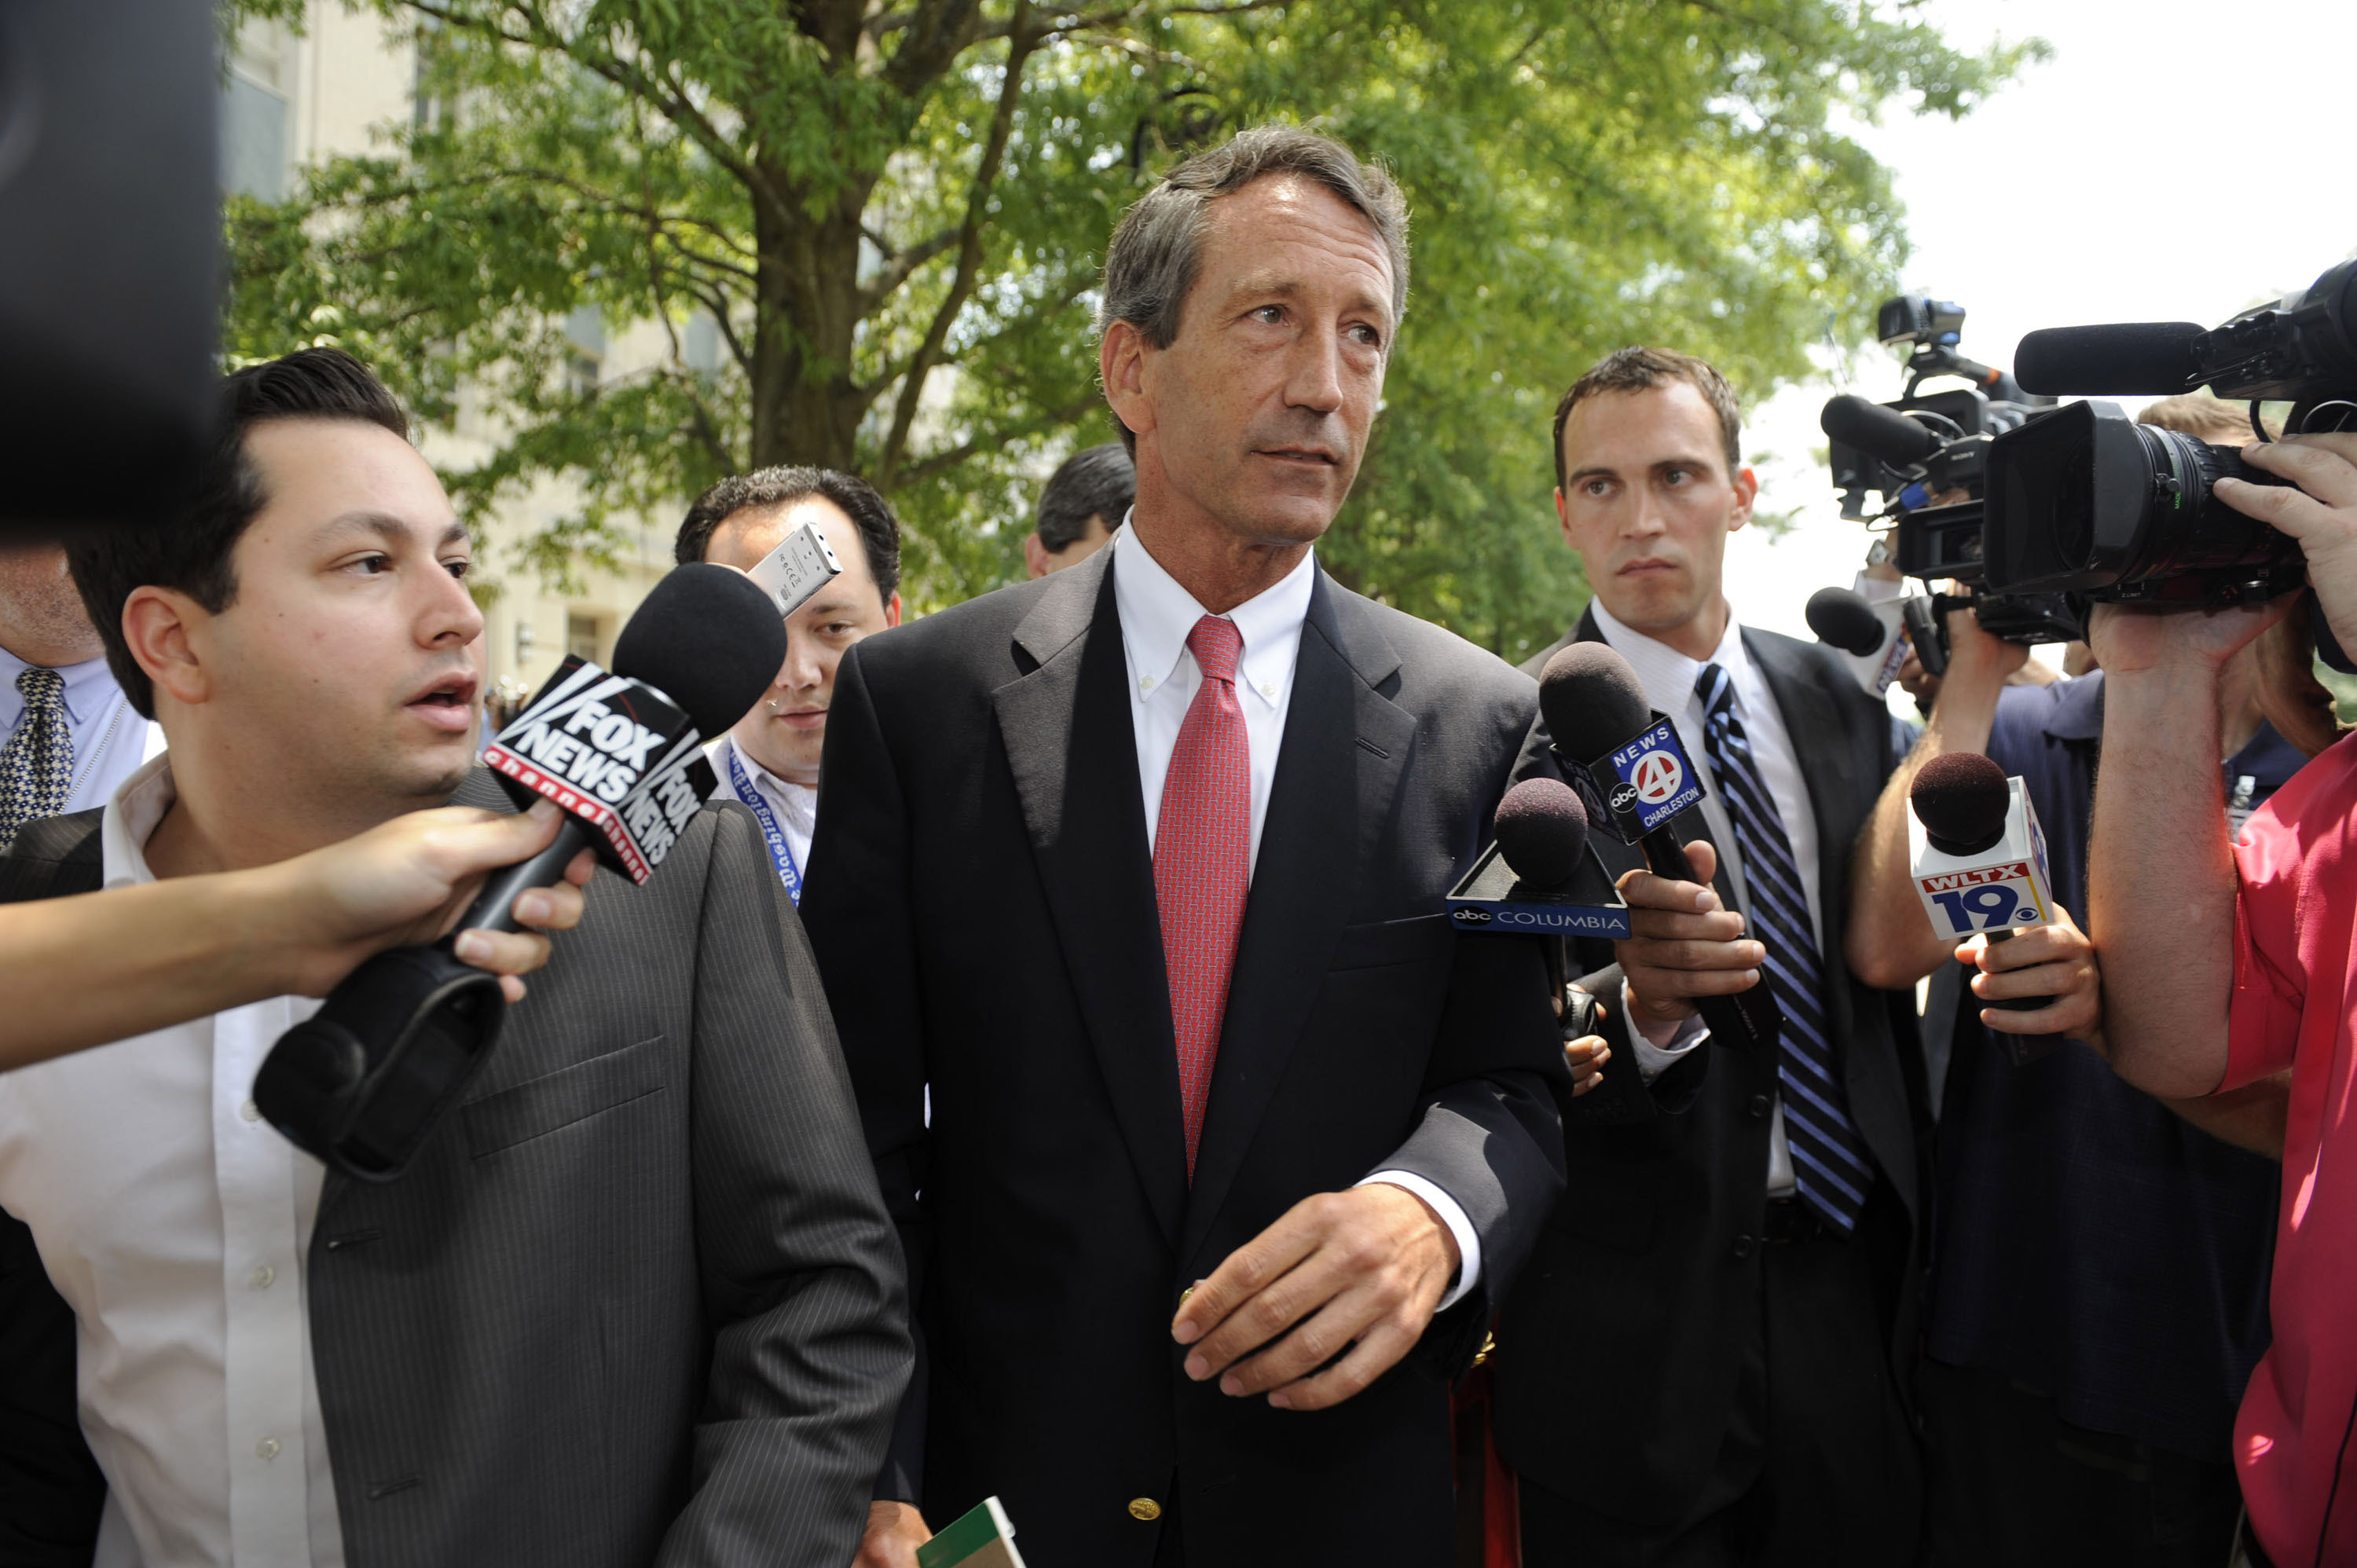 COLUMBIA, SC - JUNE 26: South Carolina Governor fields questions from the media following a special meeting with his Cabinet in the Wade Hampton Building at the Statehouse complex on June, 26, 2009. The cabinet meeting was the governor's first planned appearance since he announced his extramarital affair with a woman from Argentina. (Photo by Davis Turner/Getty Images)